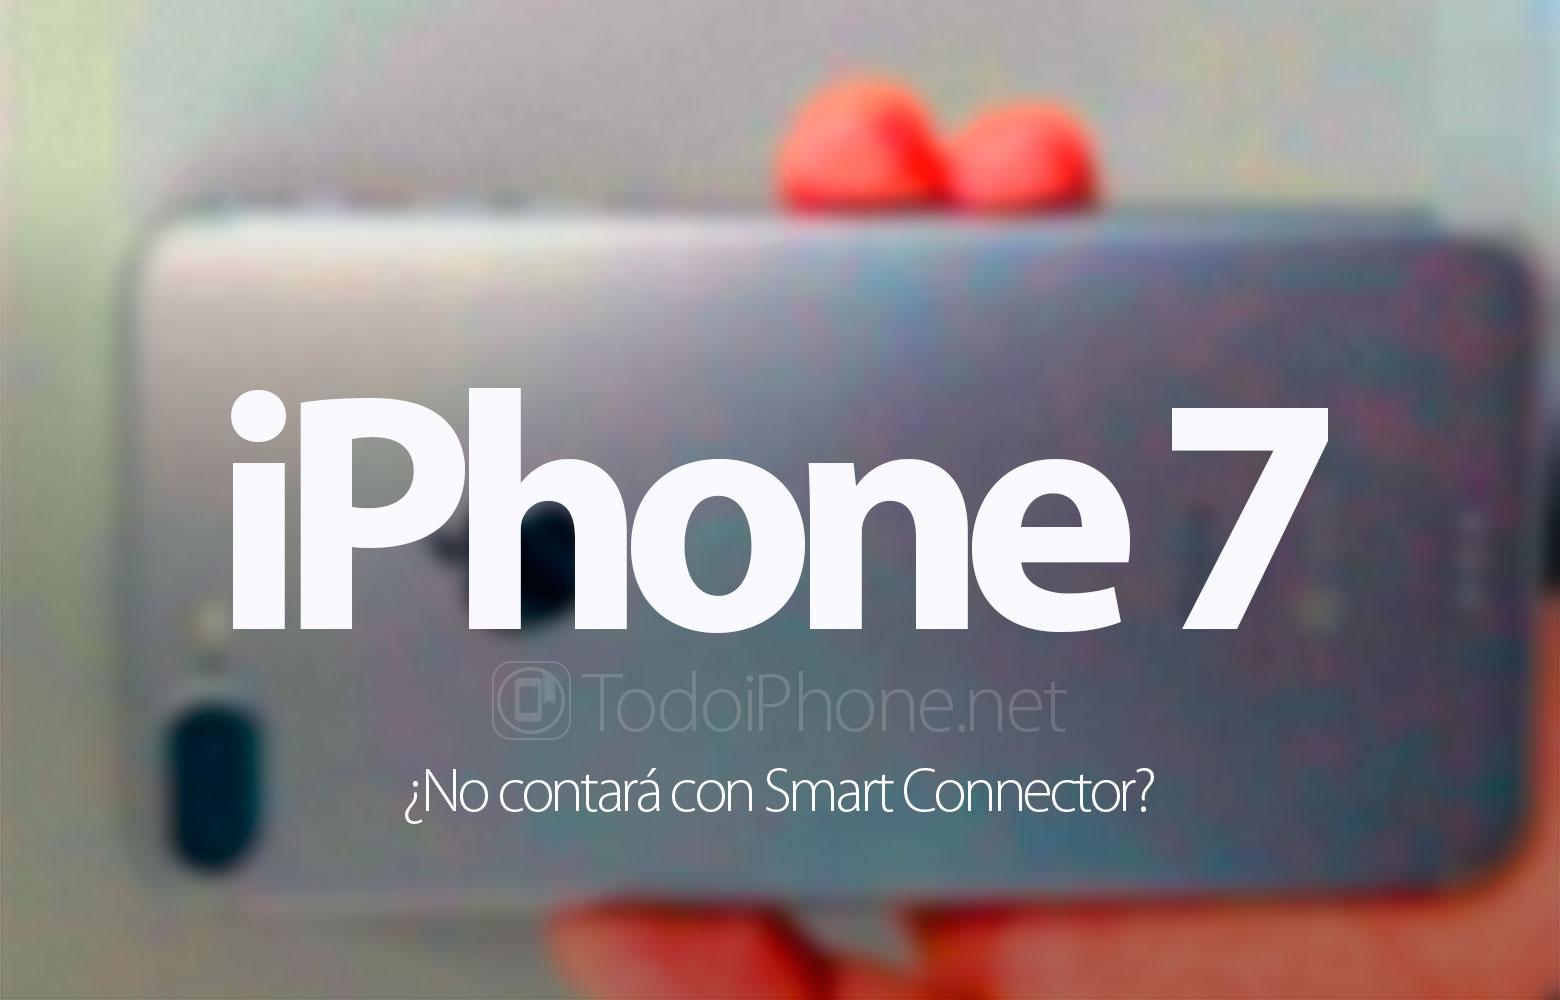 iphone-7-no-contara-smart-connector